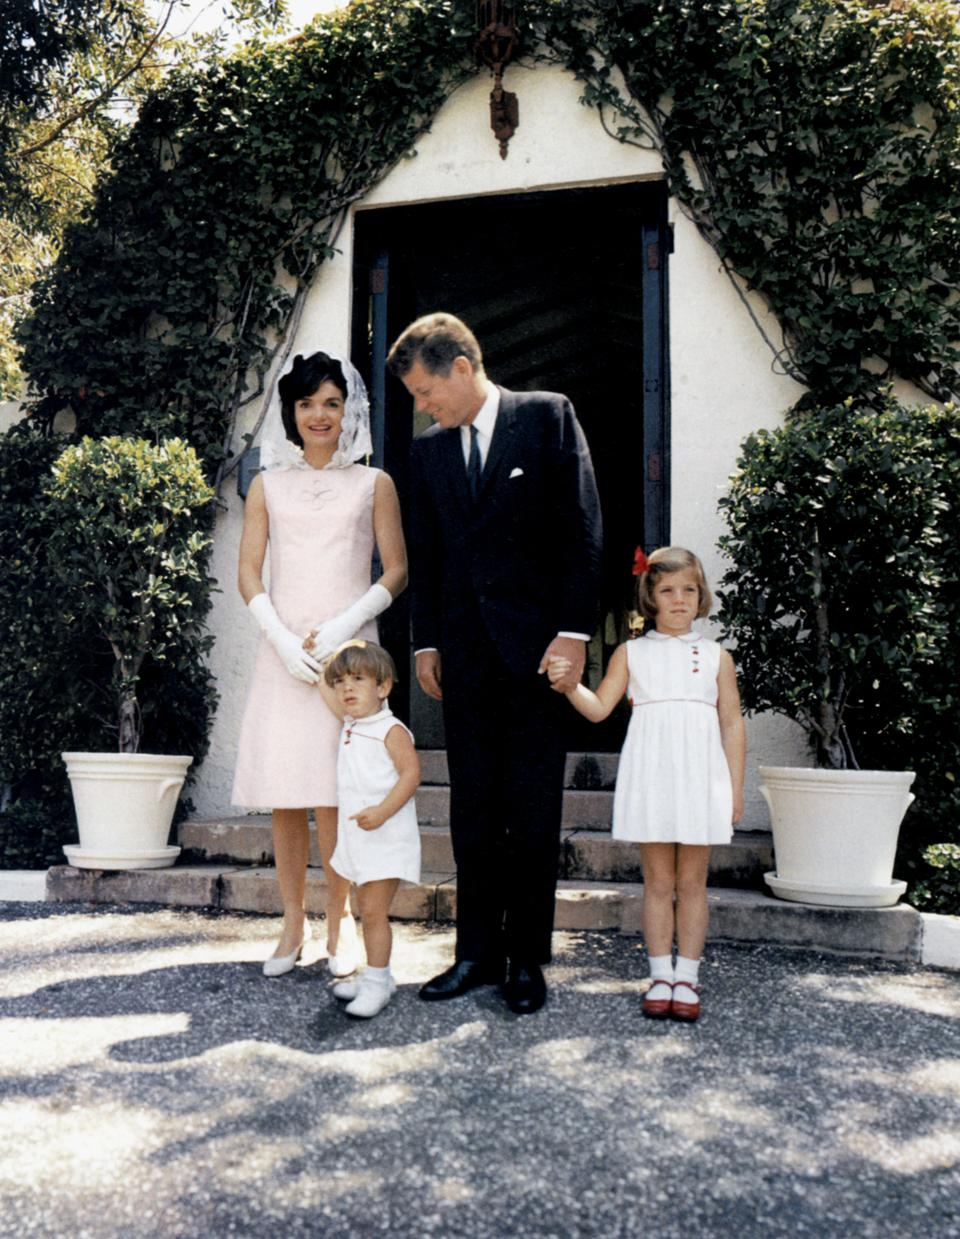 President John Kennedy and his wife Jackie and their children John Jr and Caroline at Palm Beach, Florida april 14, 1963 (Jackie wearing a mauve linen dress by Oleg Cassini created in 1963)